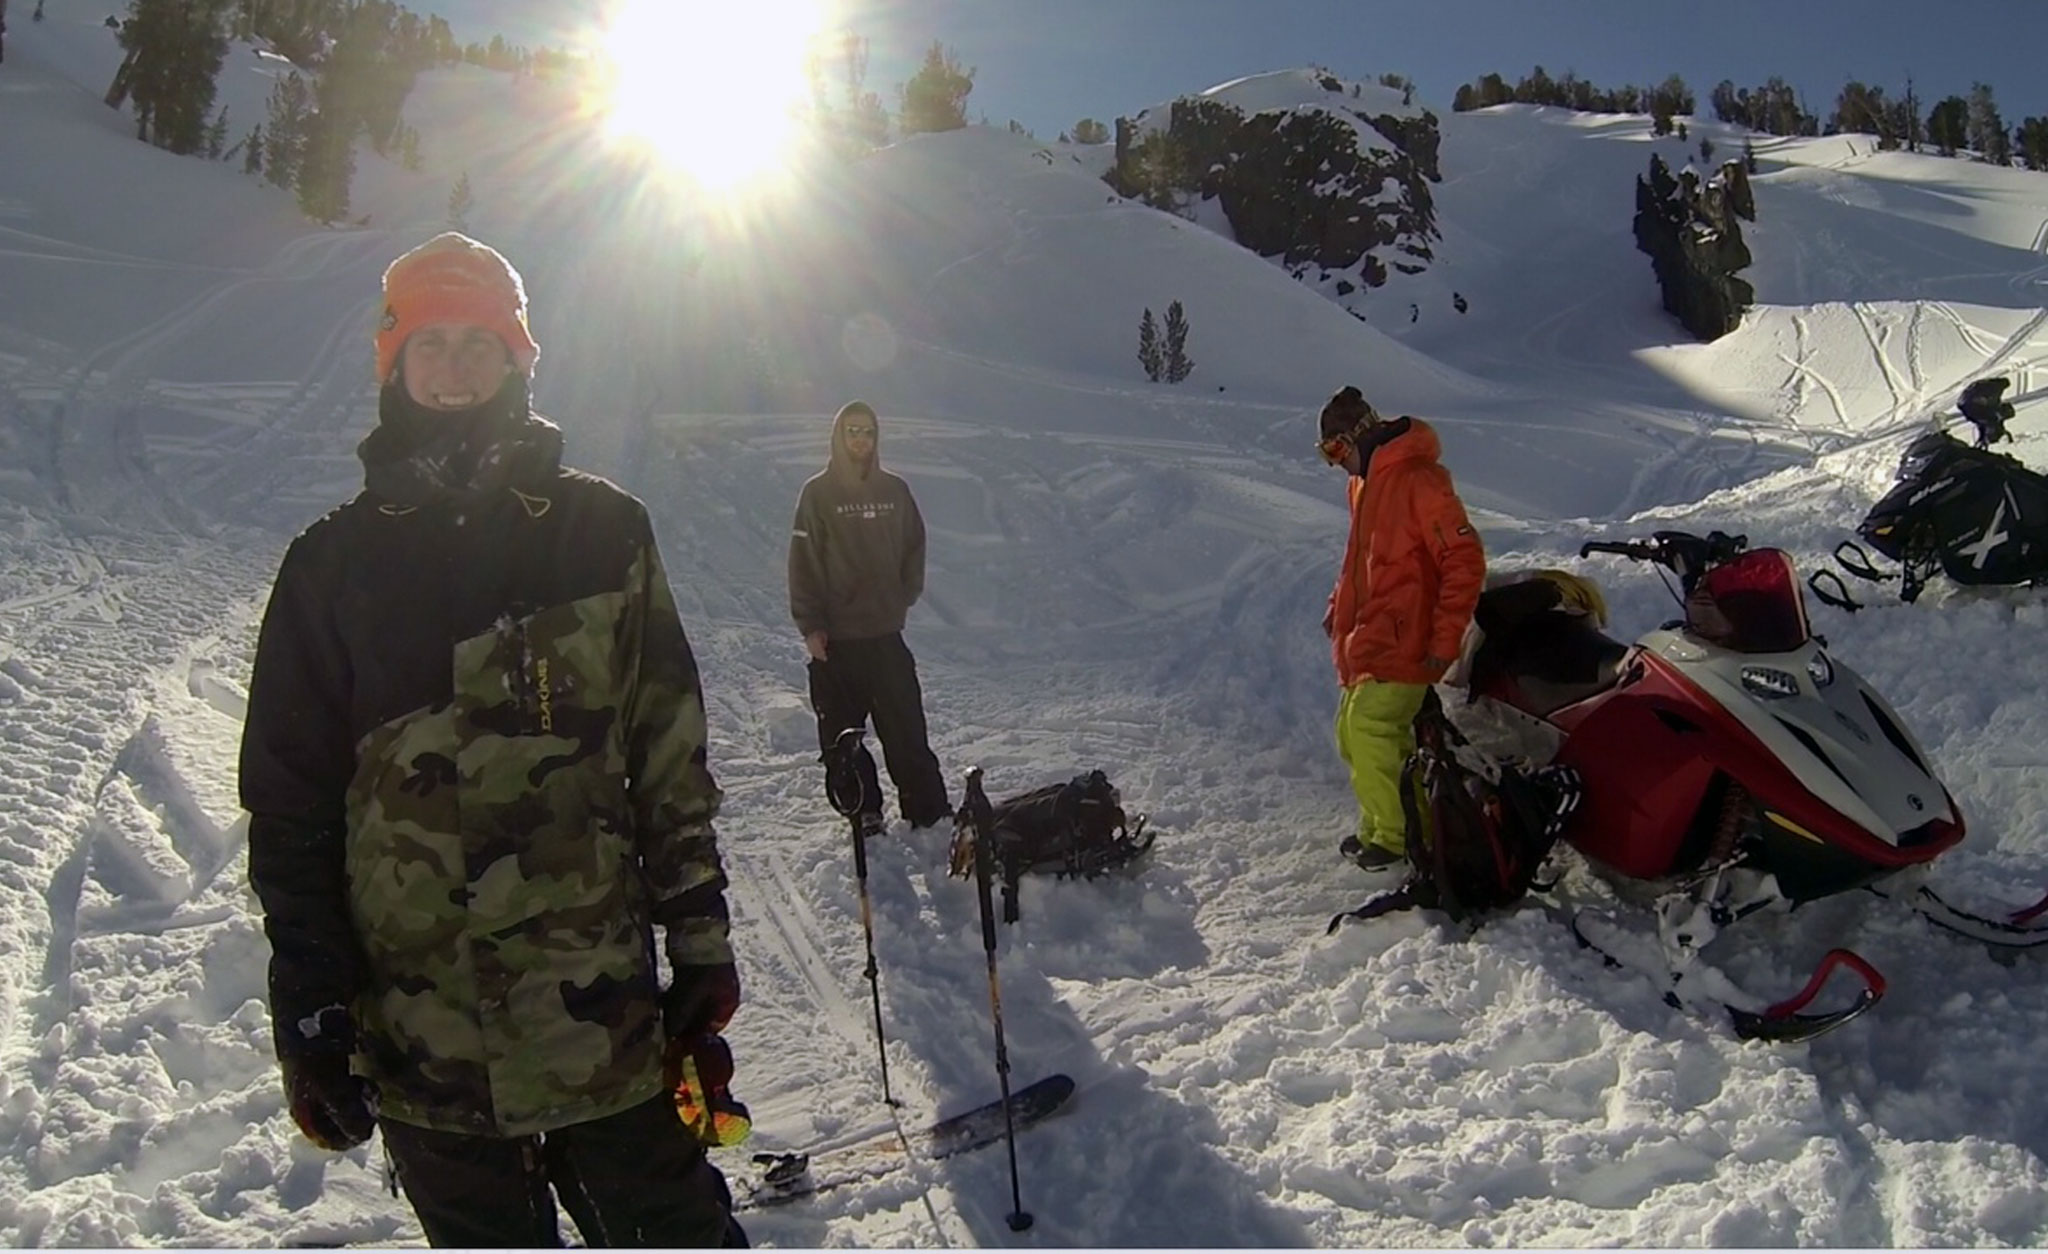 Chris Benchetler filming his video part for the debut of X Games Real Ski Backcountry.